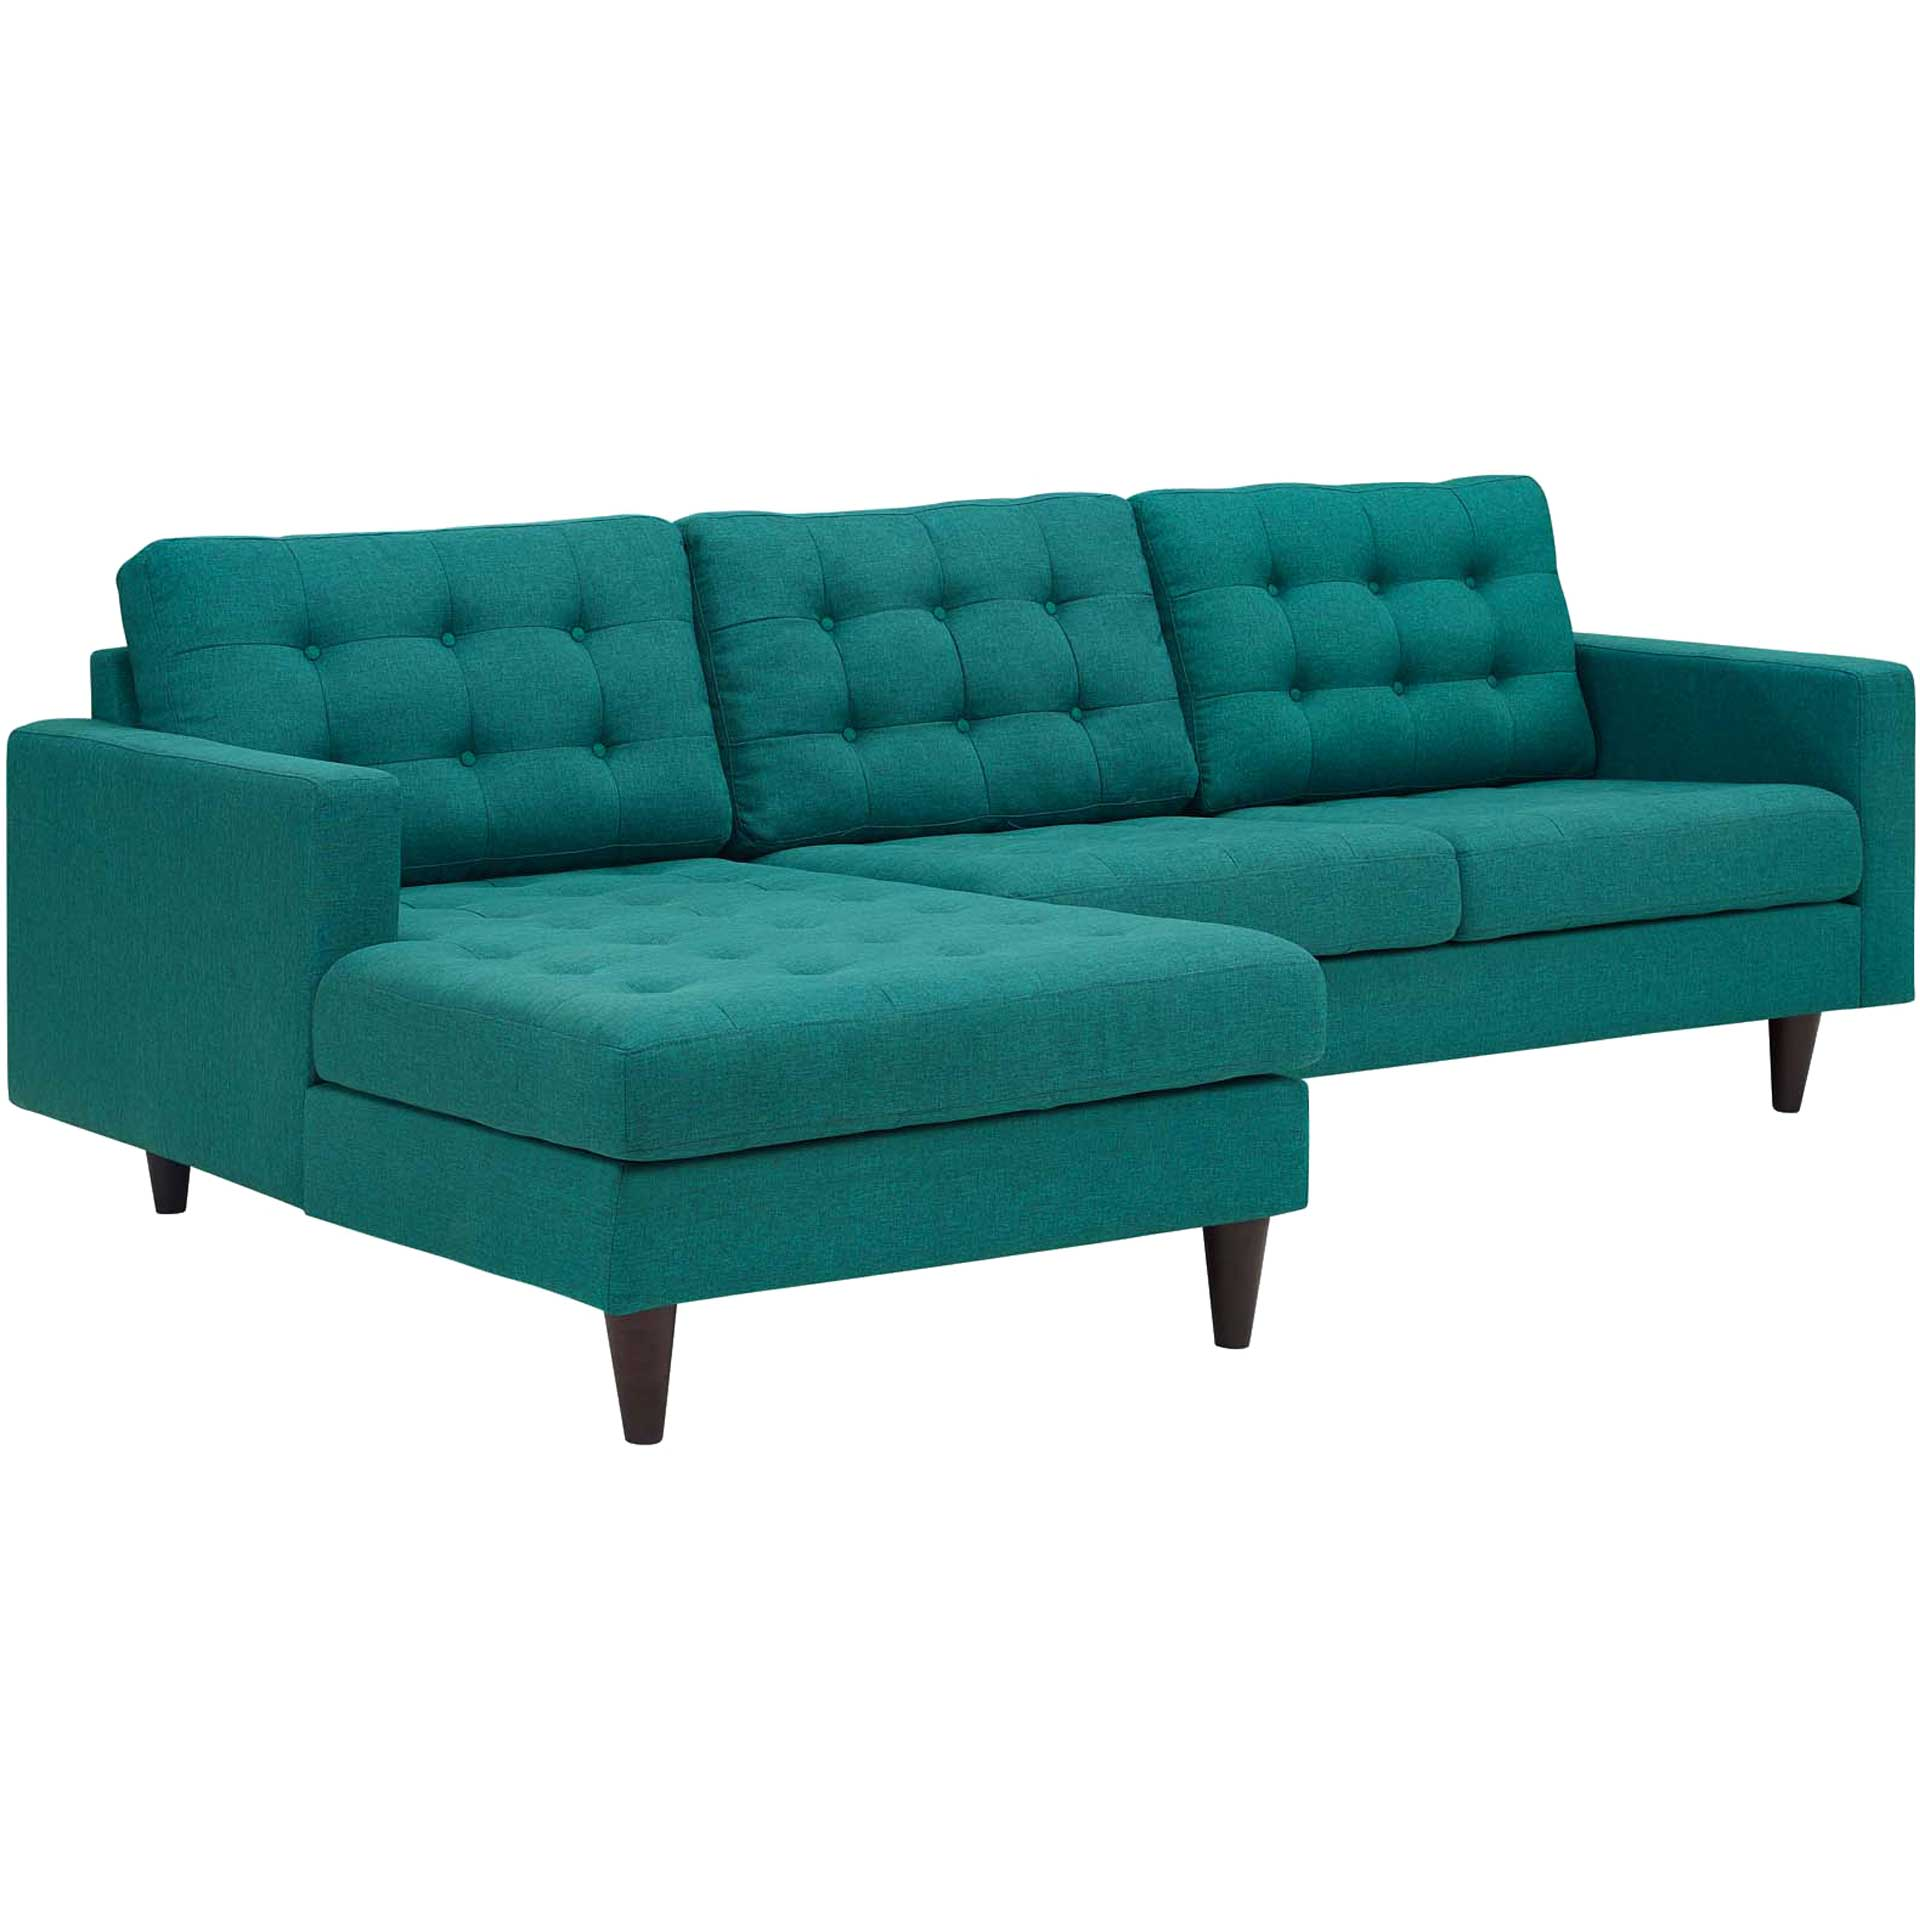 Era Upholstered Sectional Sofa Teal